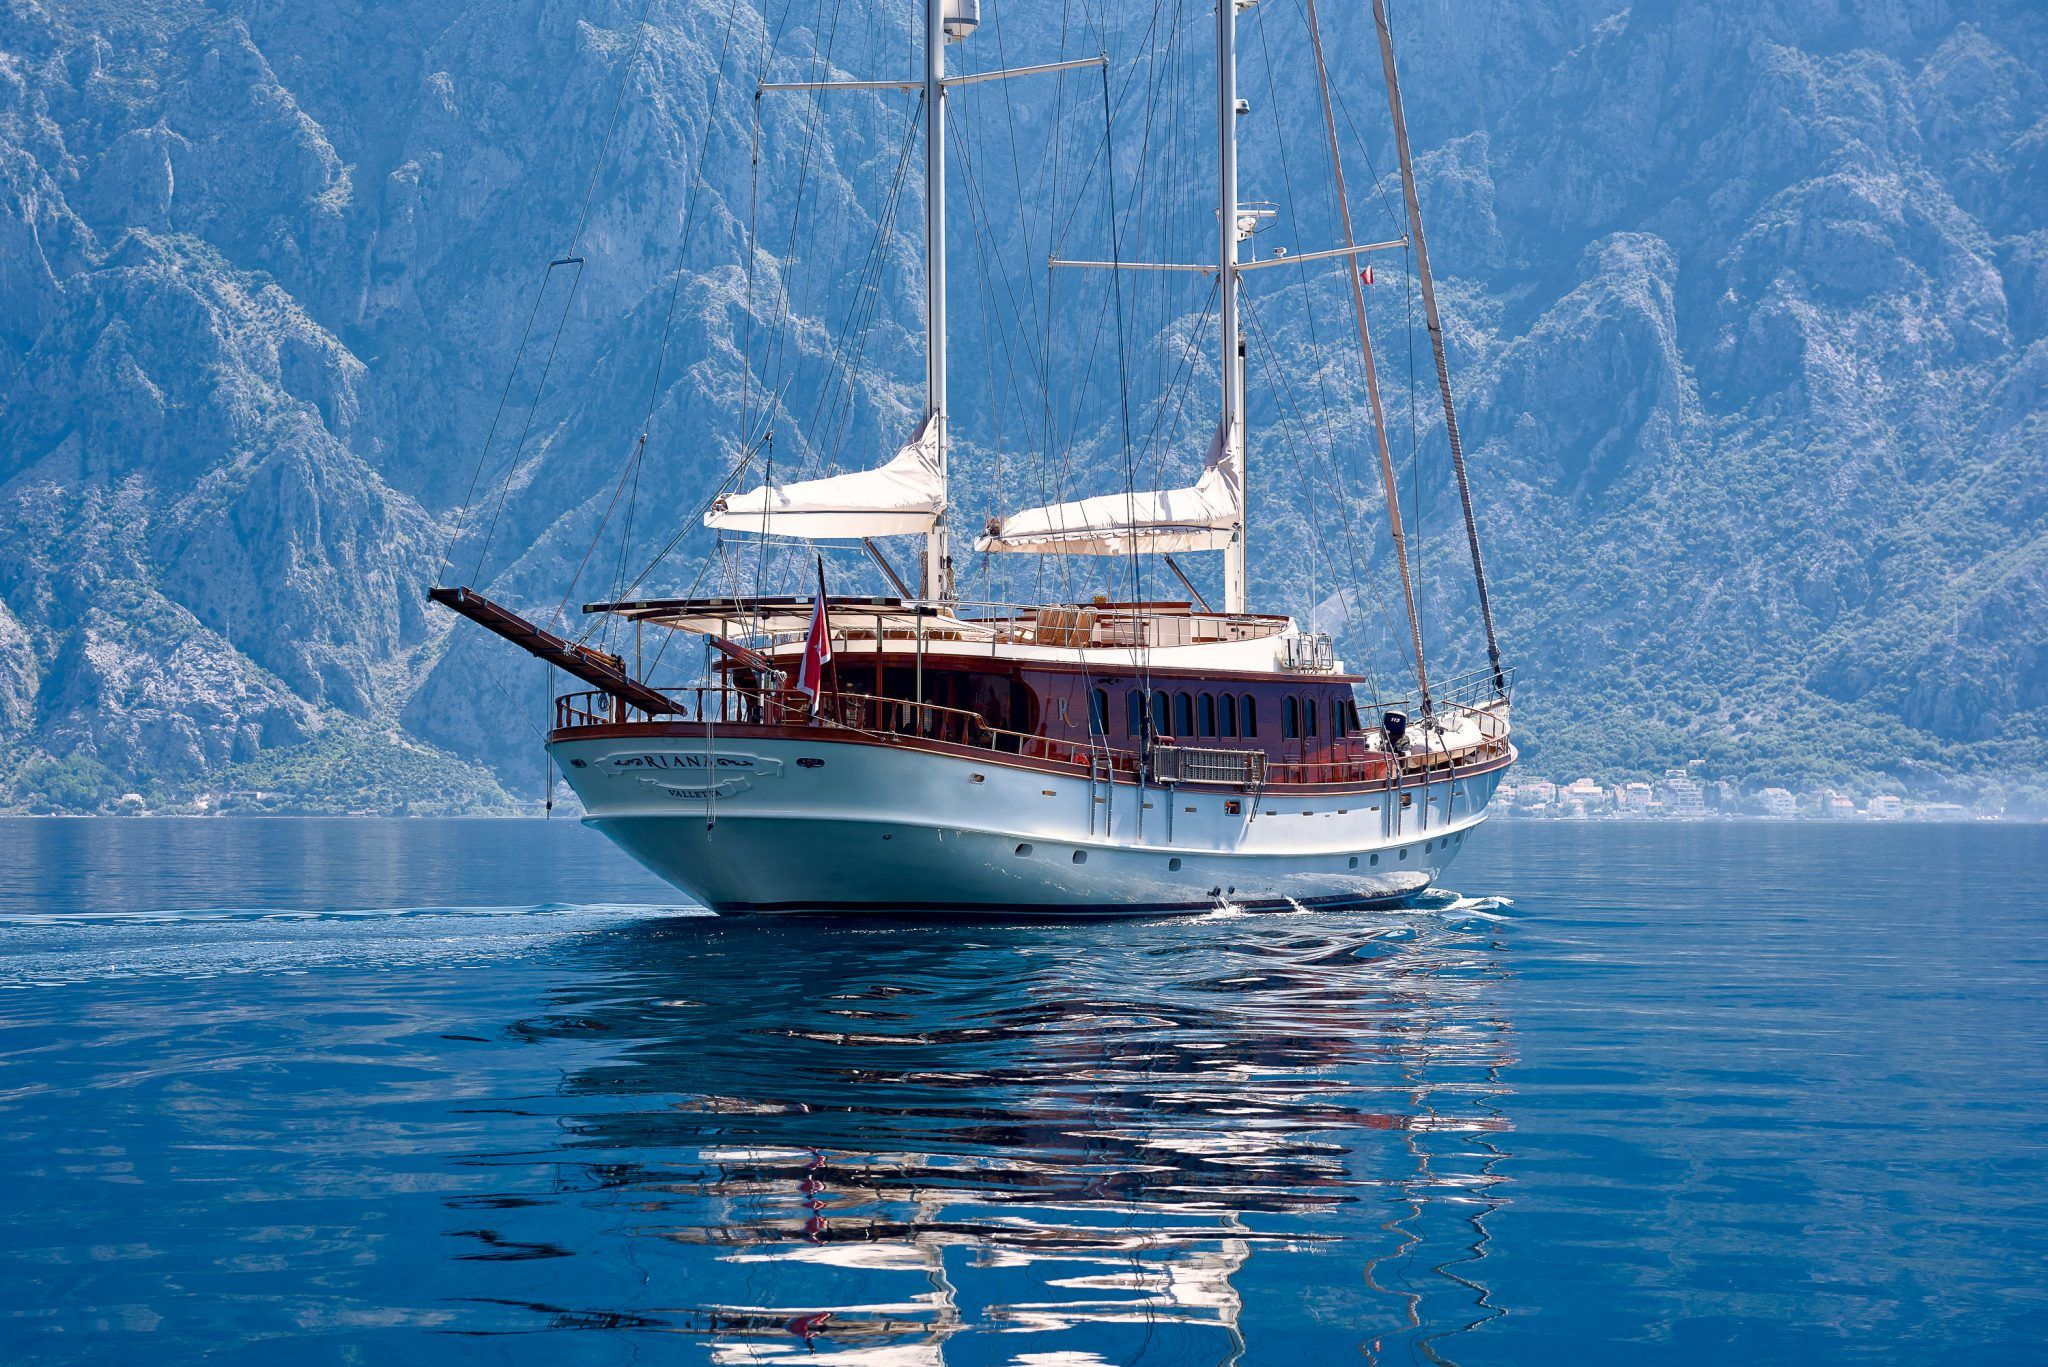 S/Y RIANA Yacht for Charter